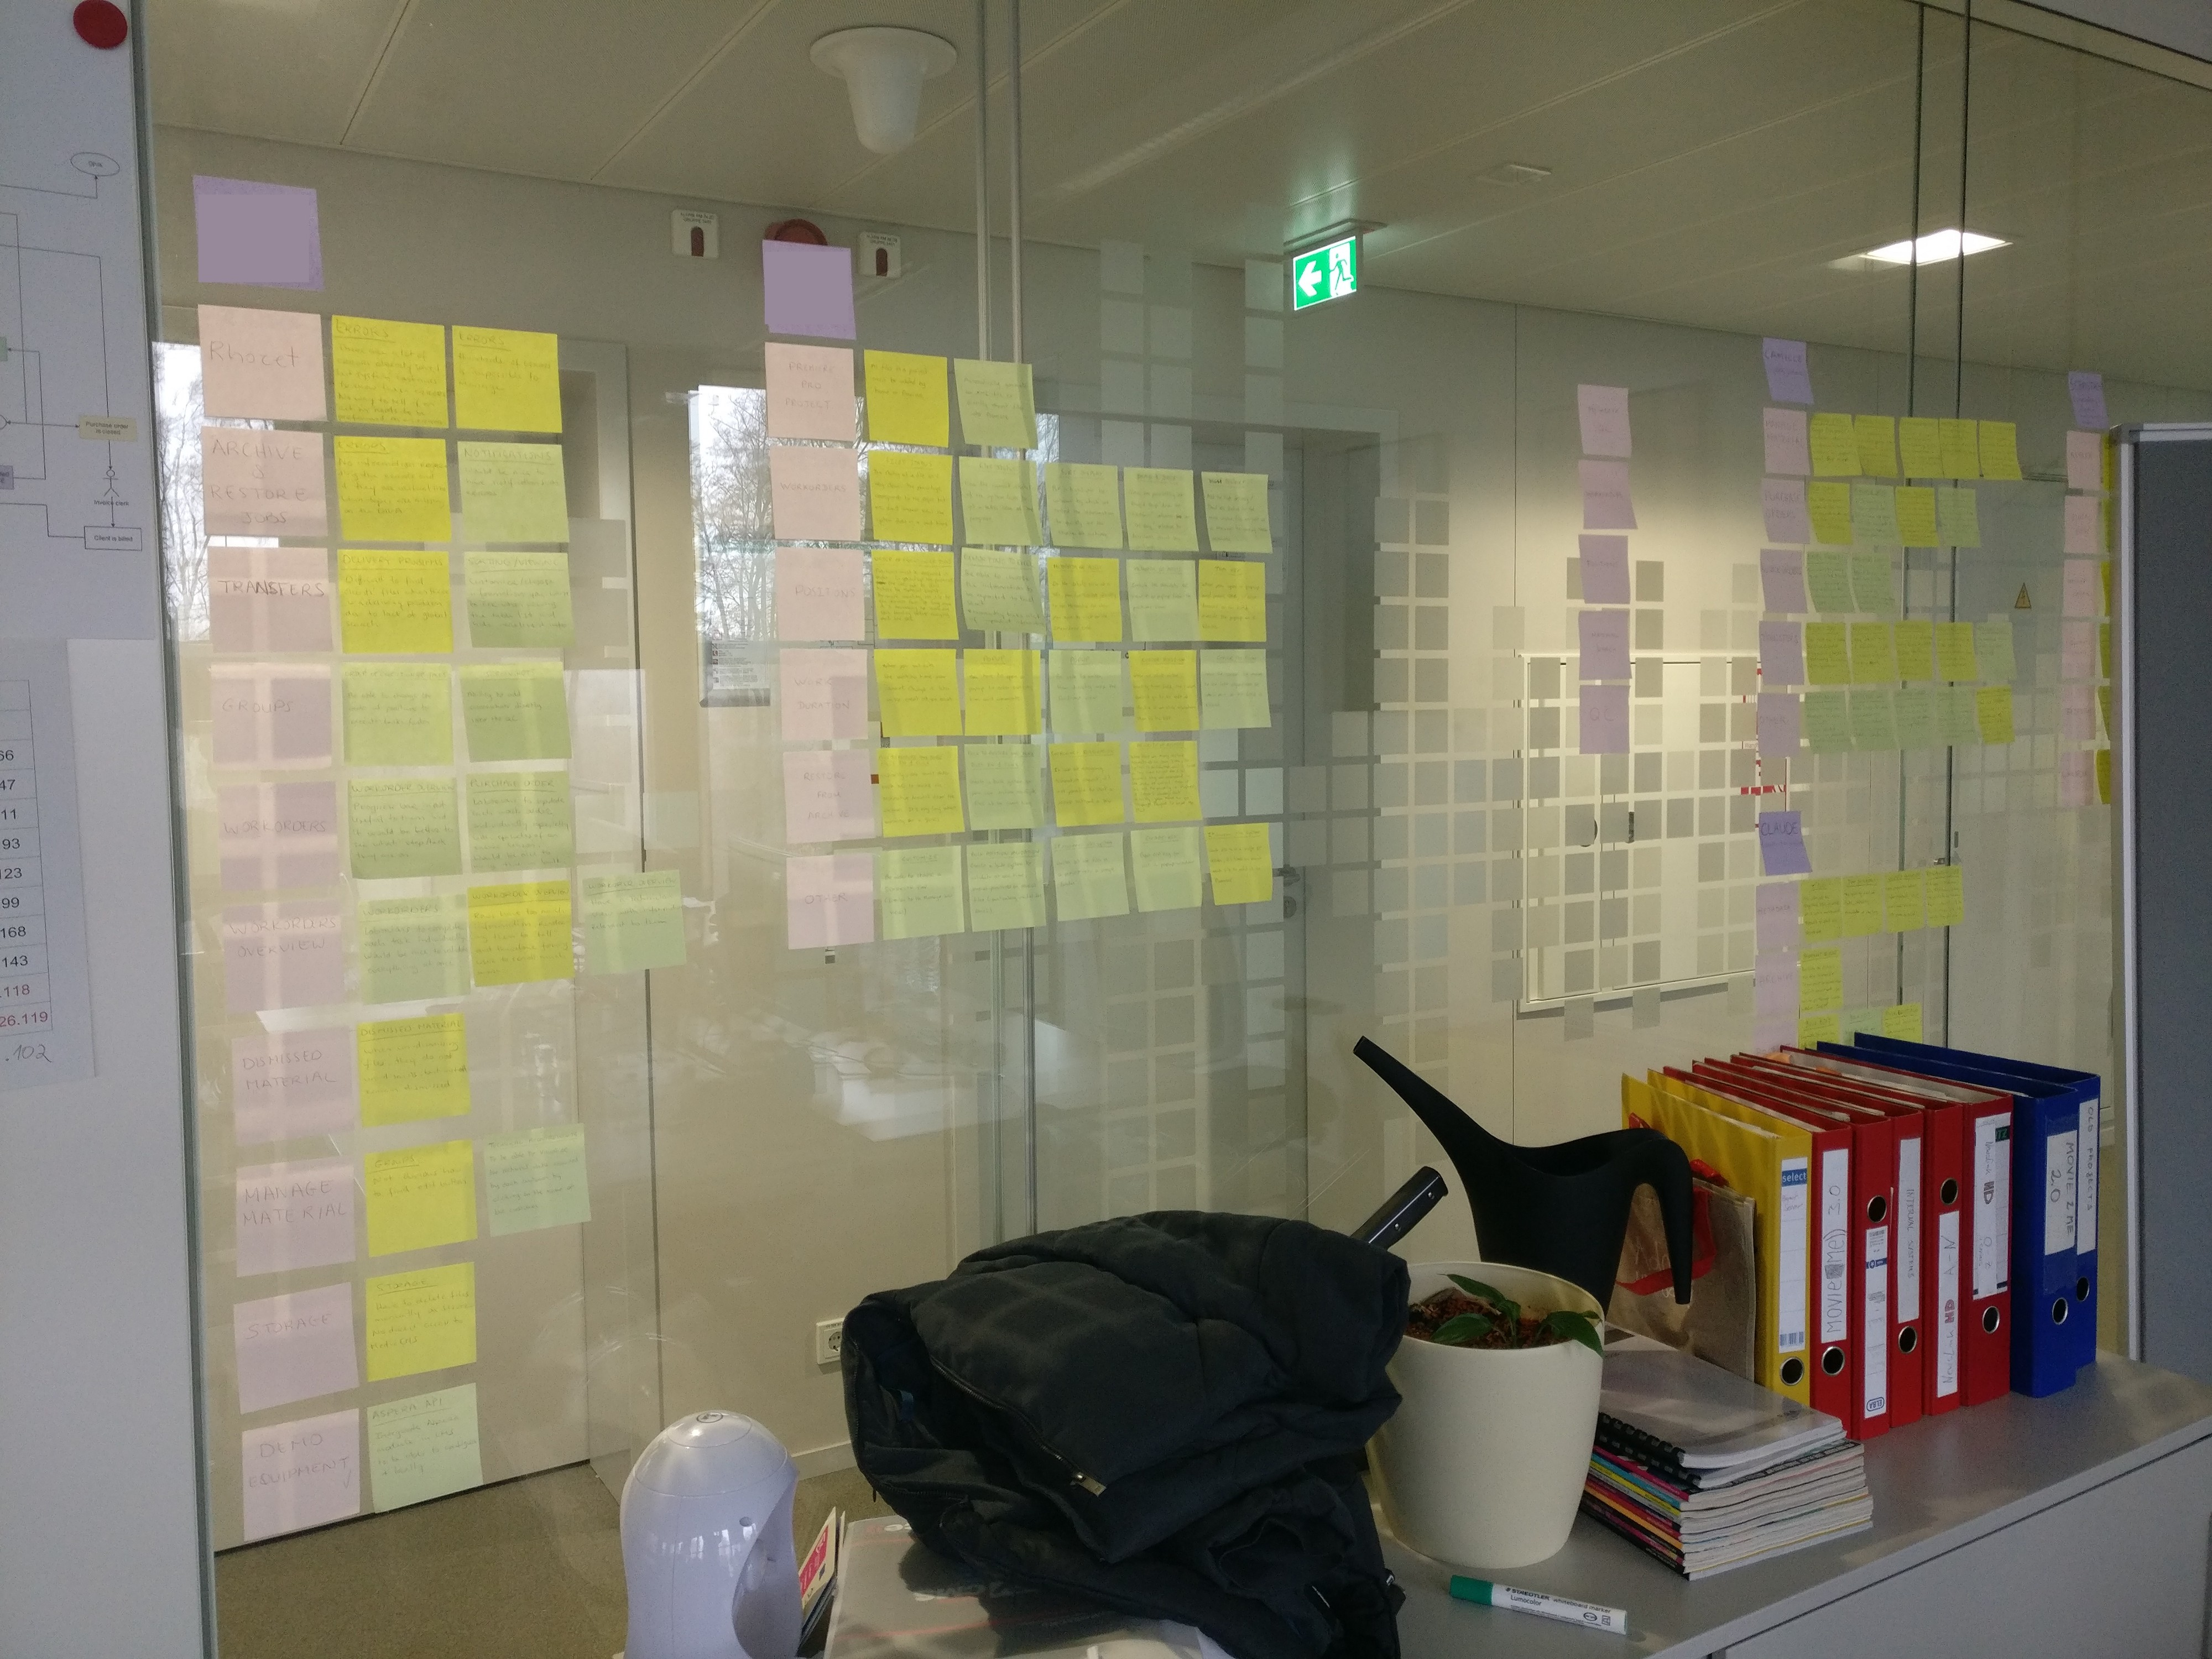 The affinity diagram analyzed and neatly organized into logical groups on the office wall with post-it notes.